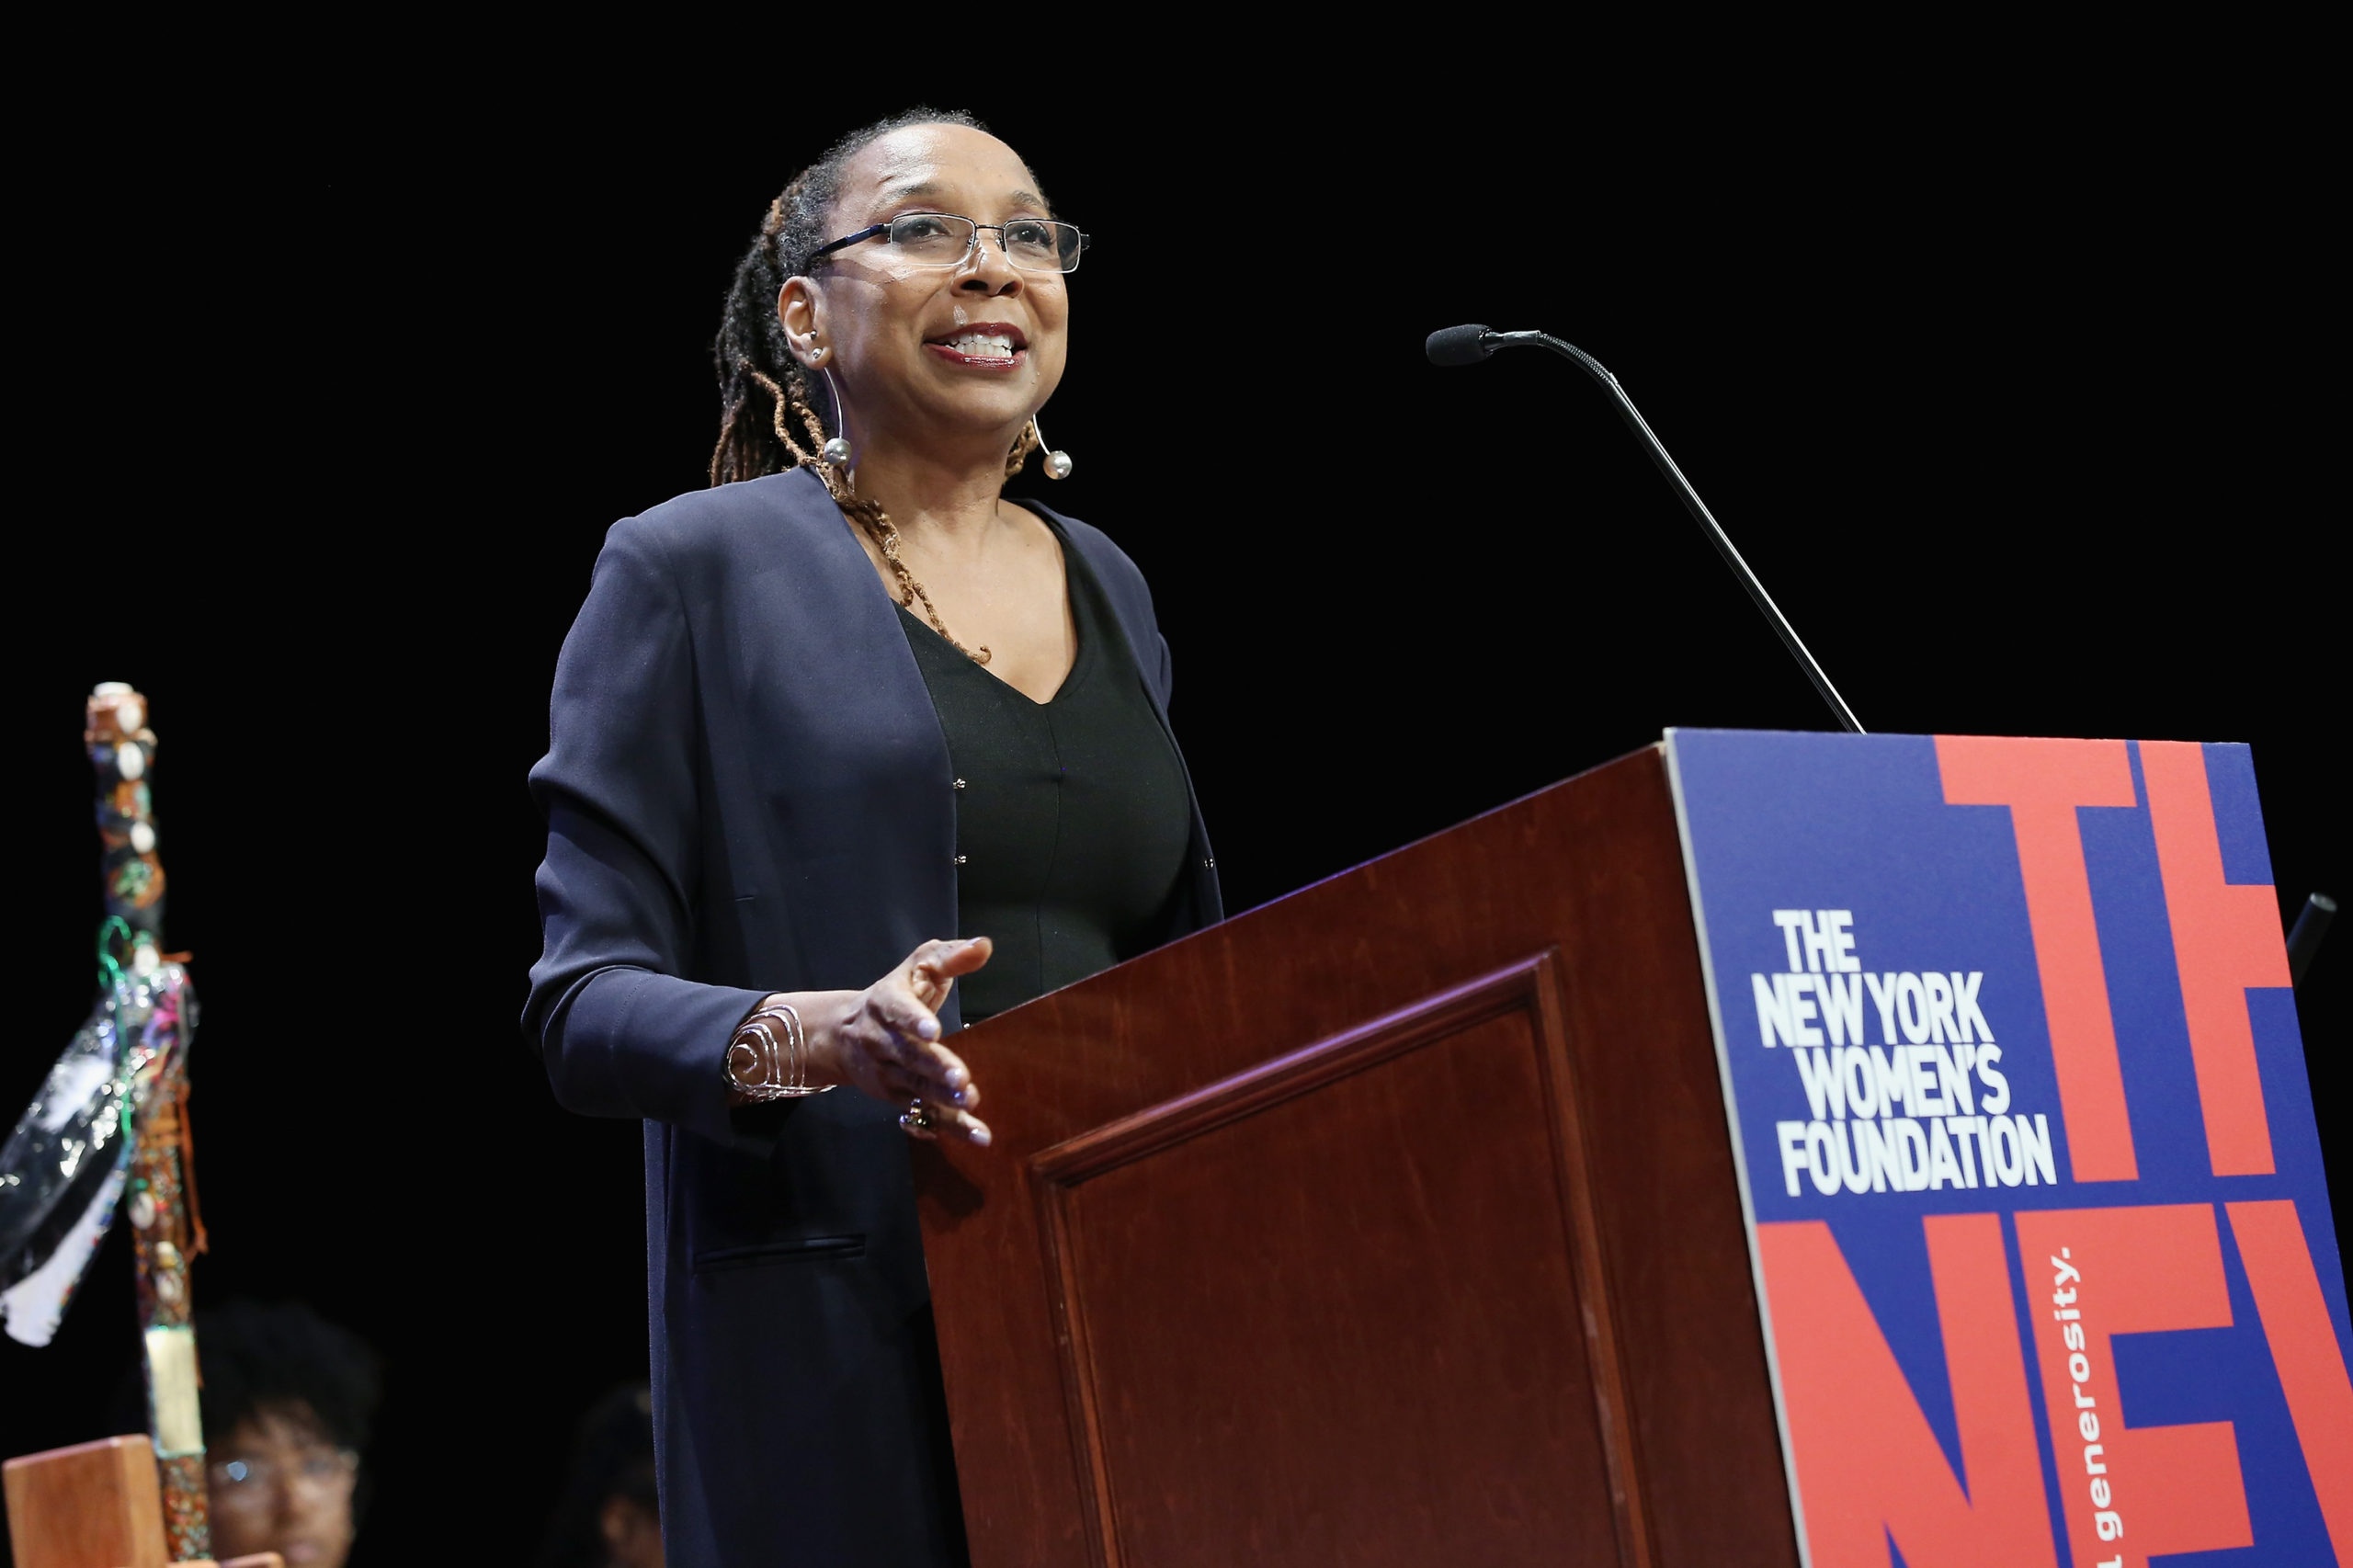 """NEW YORK, NY - MAY 10: Celebrating Women Award Honoree and co-founder and director of the African American Policy Forum, Kimberle Crenshaw speaks onstage during the New York Women's Foundation's 2018 """"Celebrating Women"""" breakfast on May 10, 2018 in New York City. (Photo by Monica Schipper/Getty Images for The New York Women's Foundation)"""